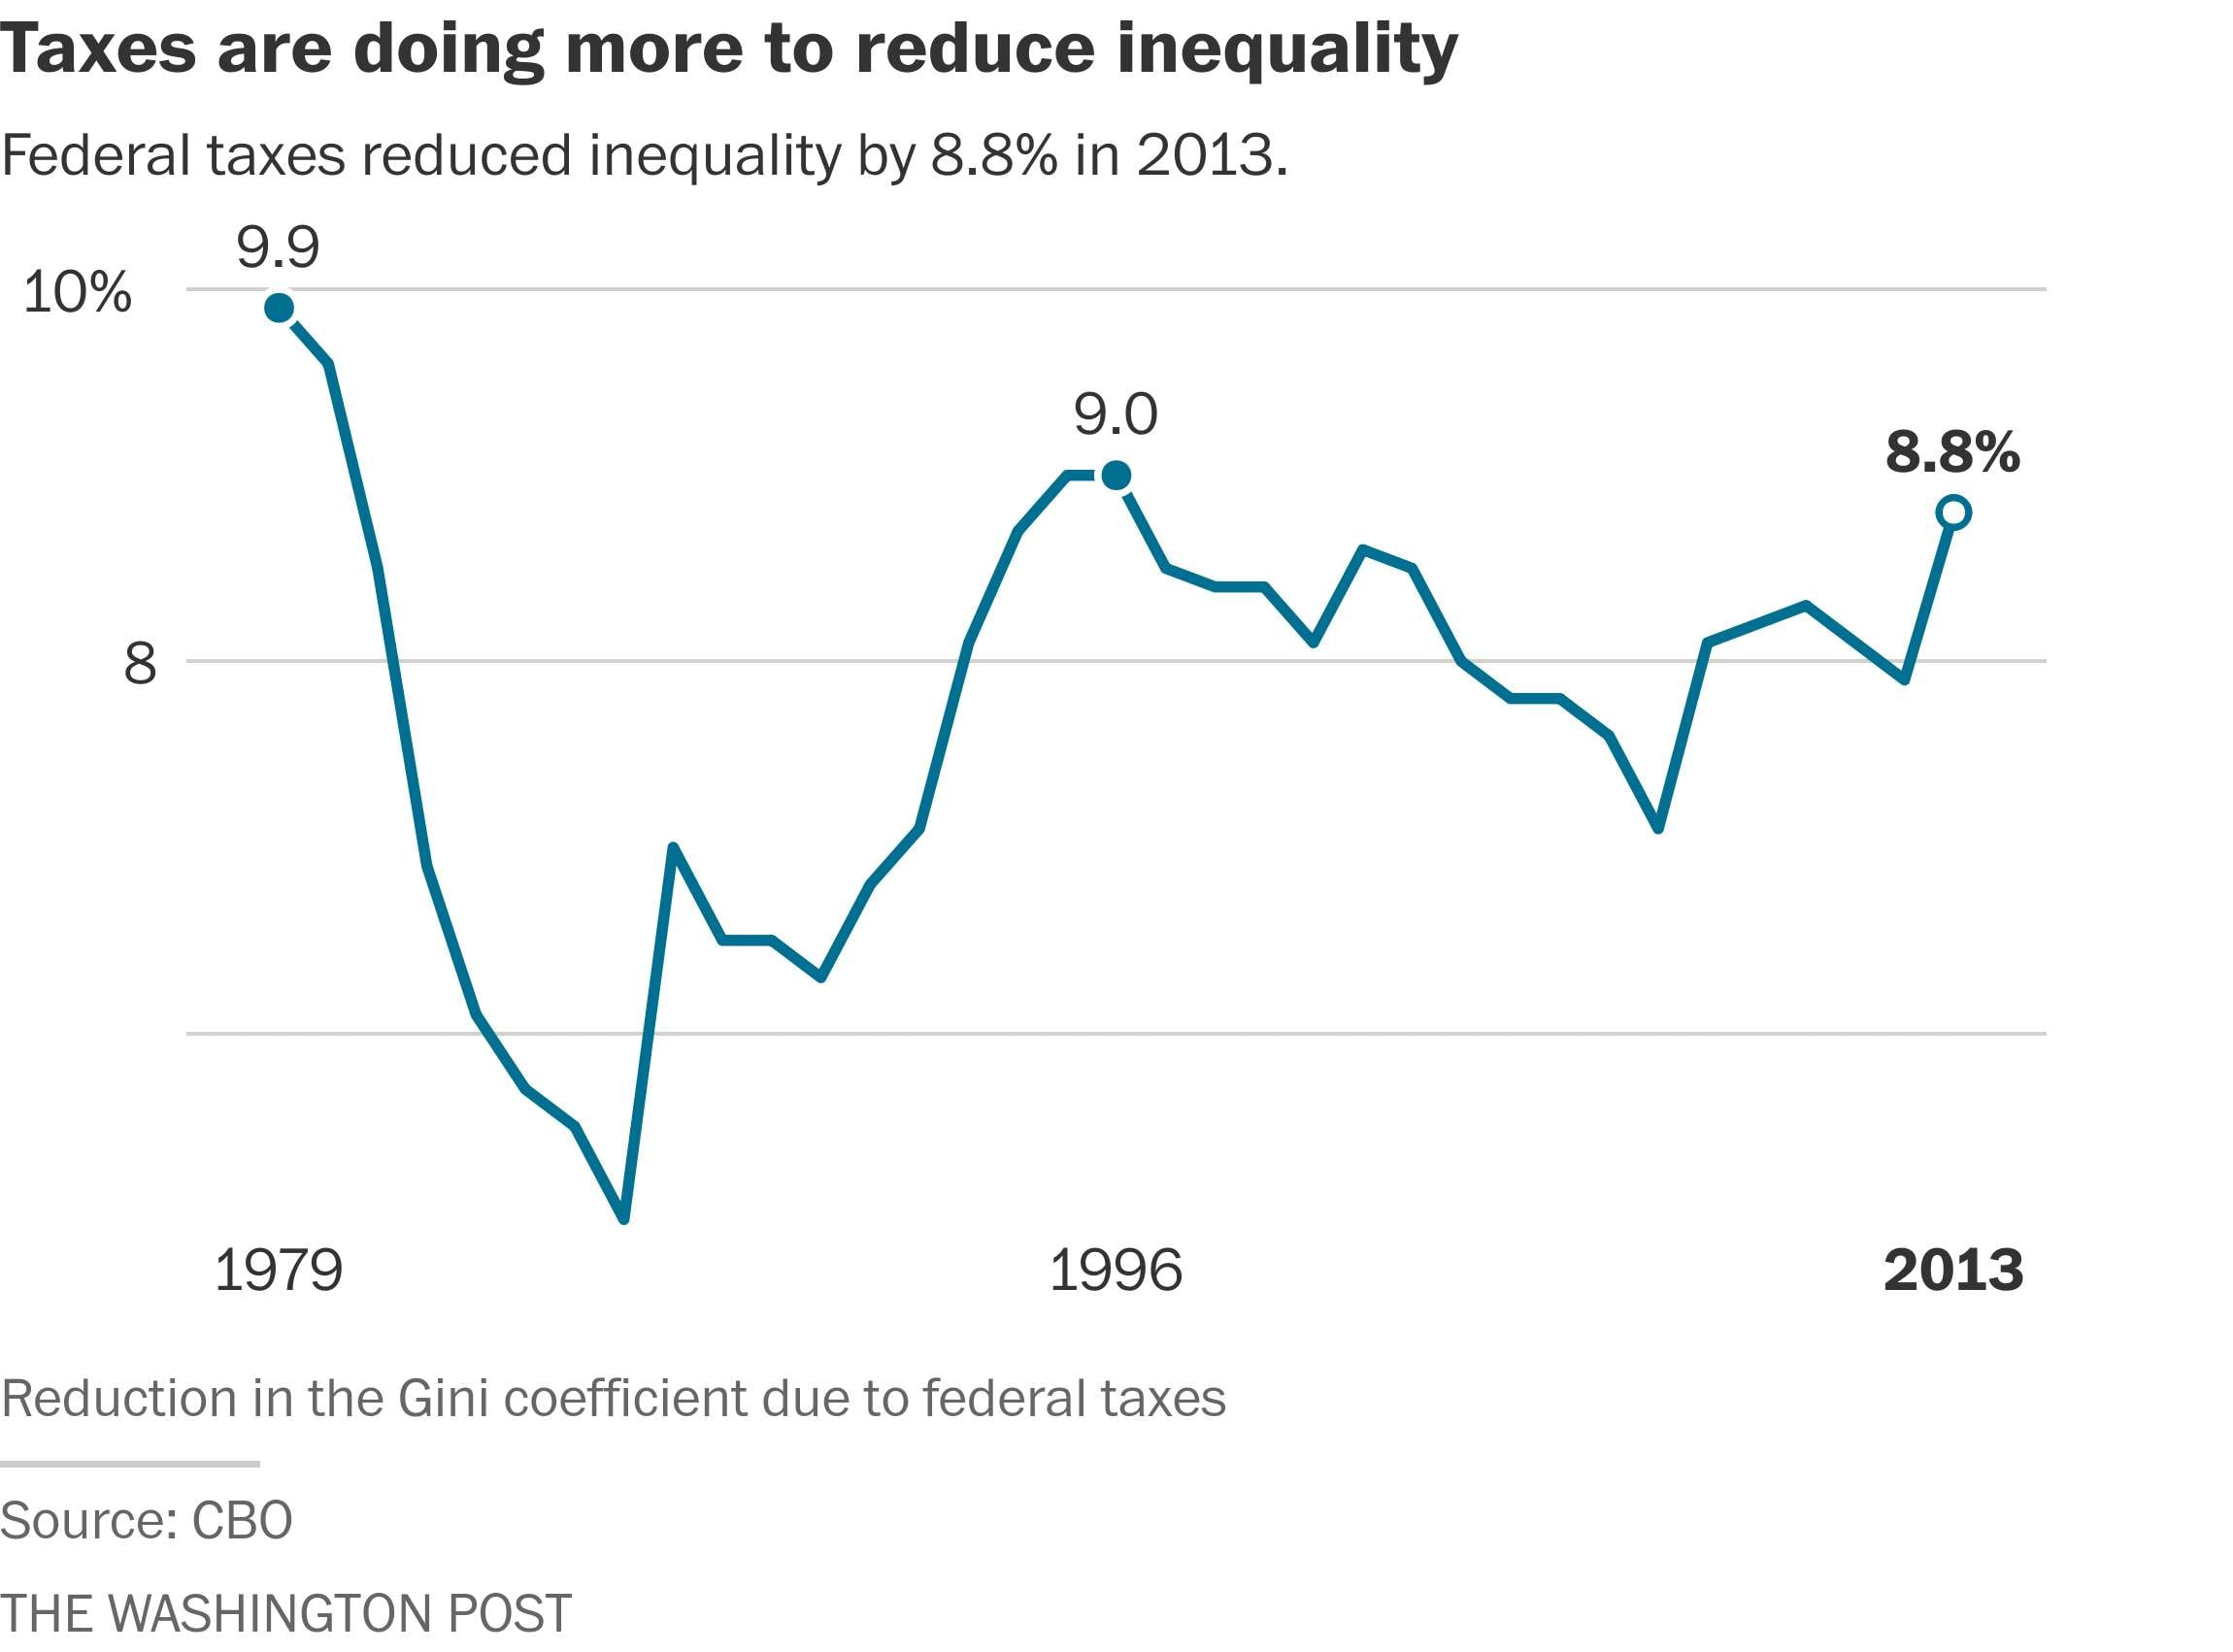 Here's proof President Obama really did reduce inequality